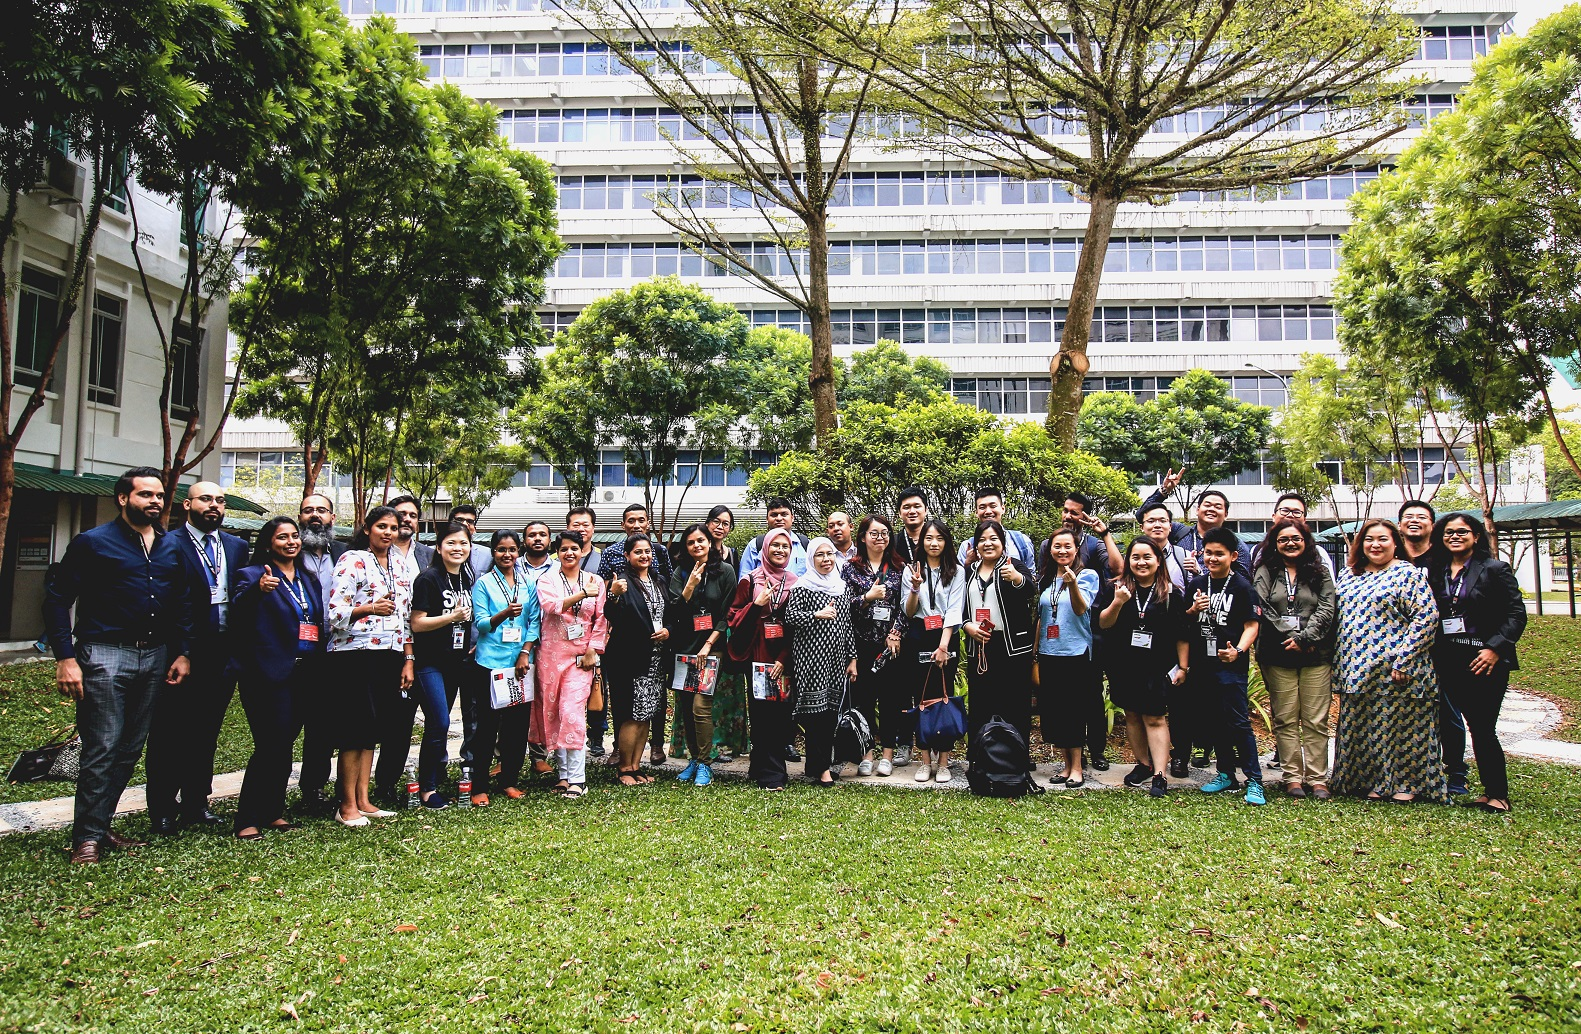 Group photo of the partners and Swinburne staff.